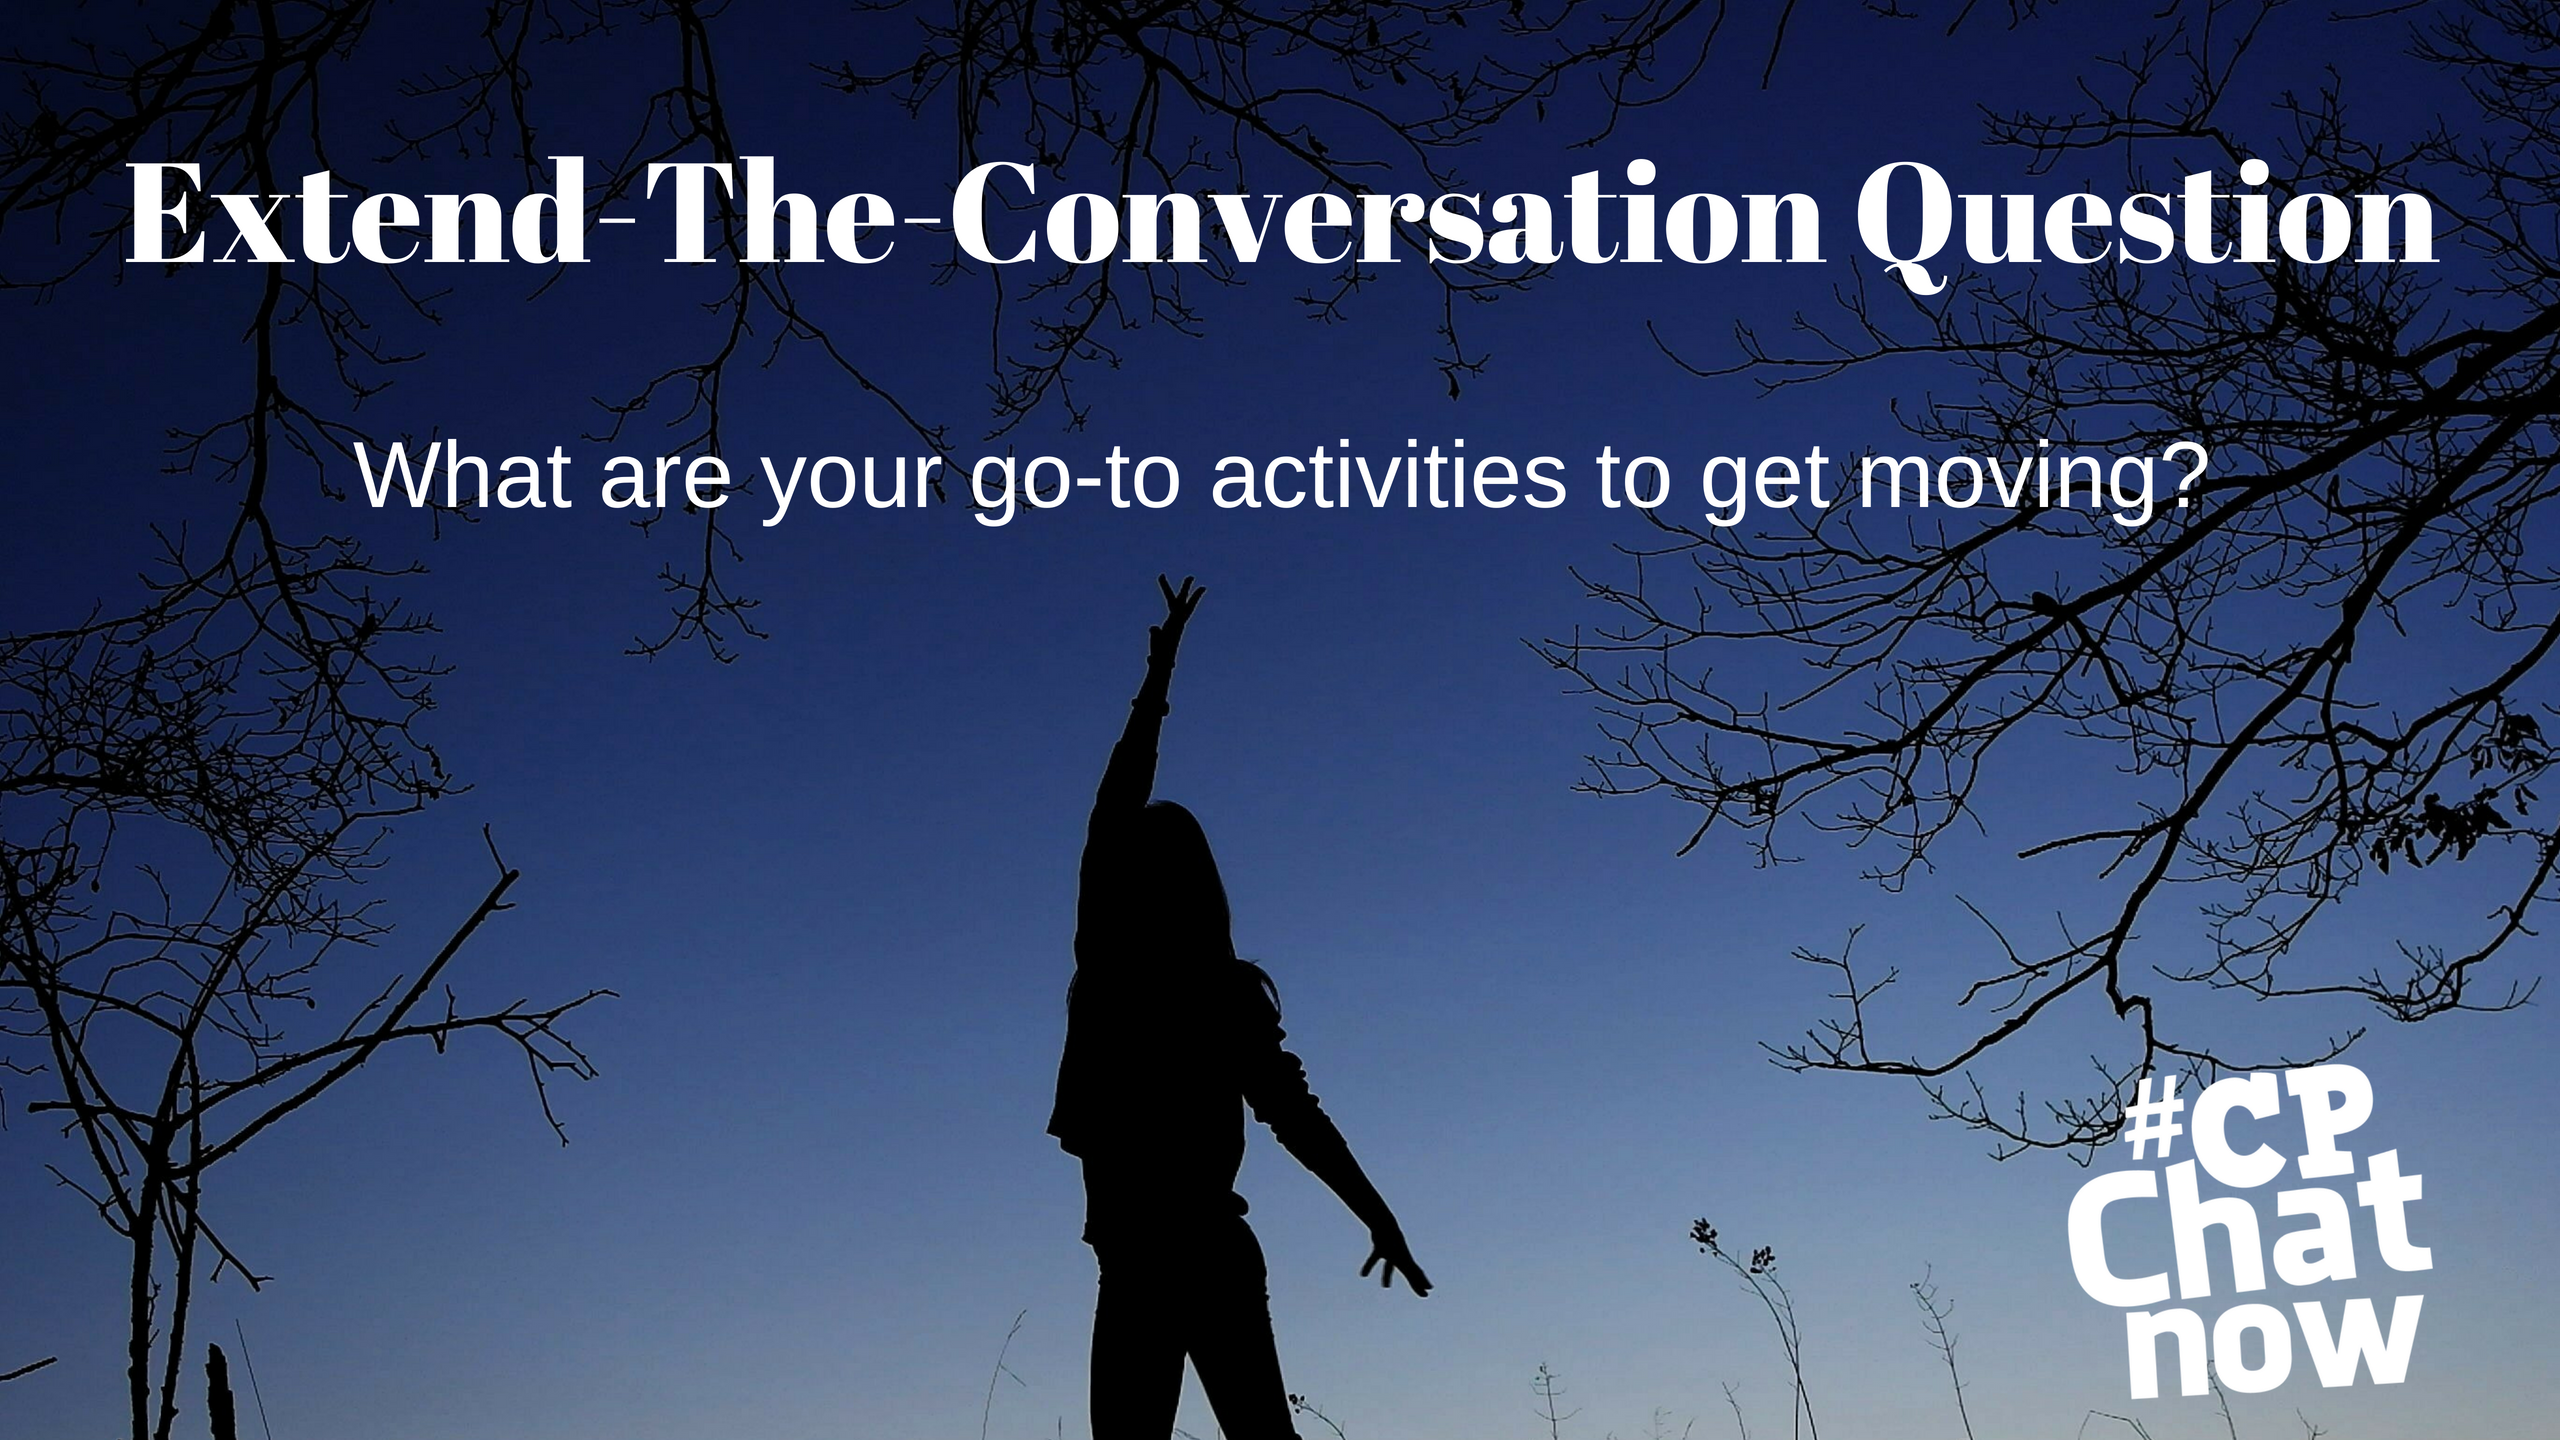 Extend-The-Conversation Question in white at the top. What are your go to activities to get moving? in the middle with the #CPChatNow white logo. A person is standing in the middle of trees with their arm up